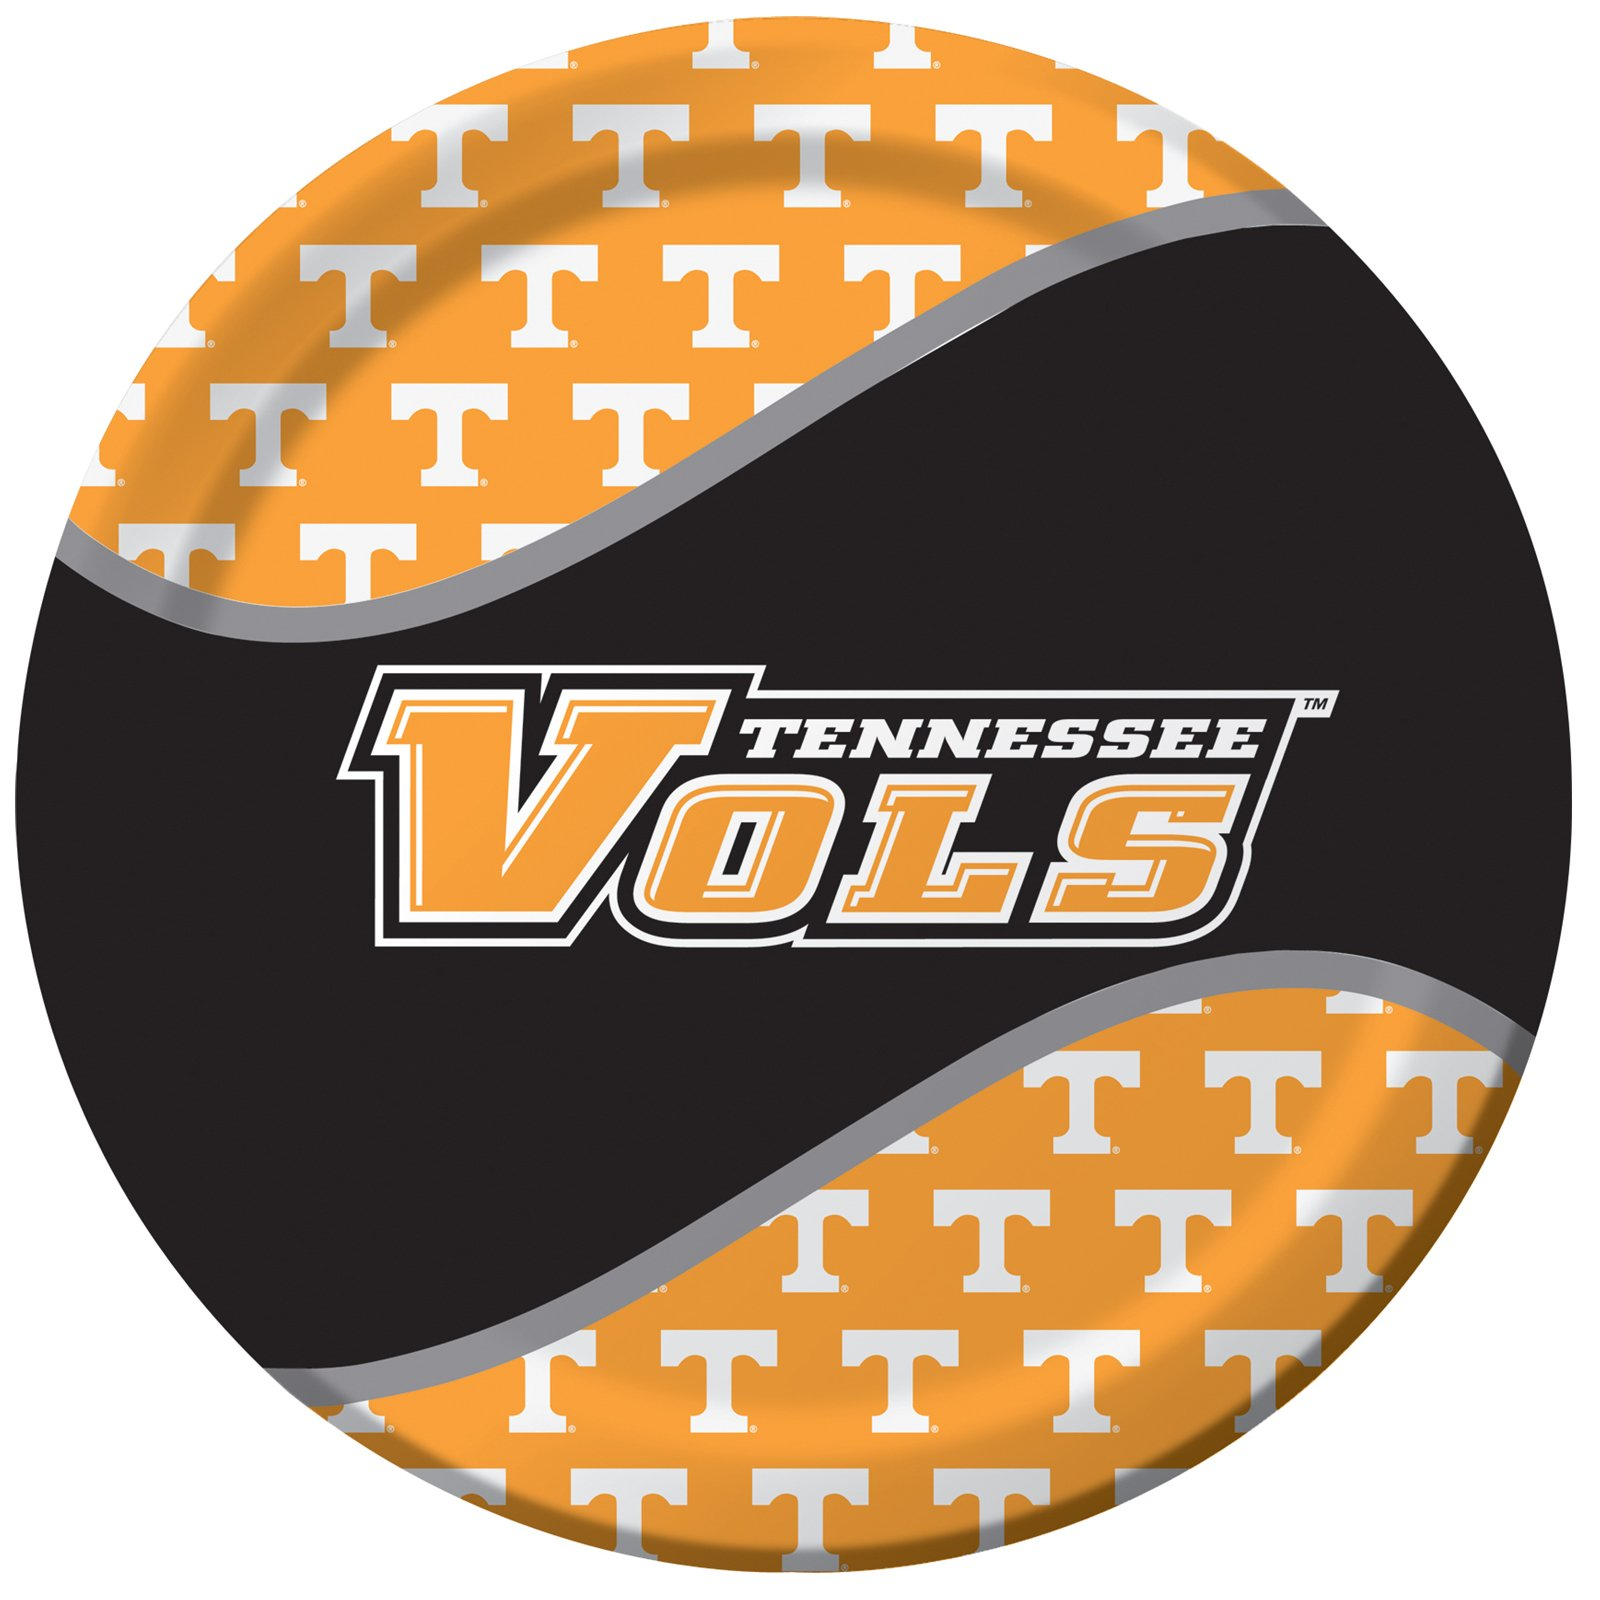 Tennessee Volunteers - Dinner Plates (8 count)